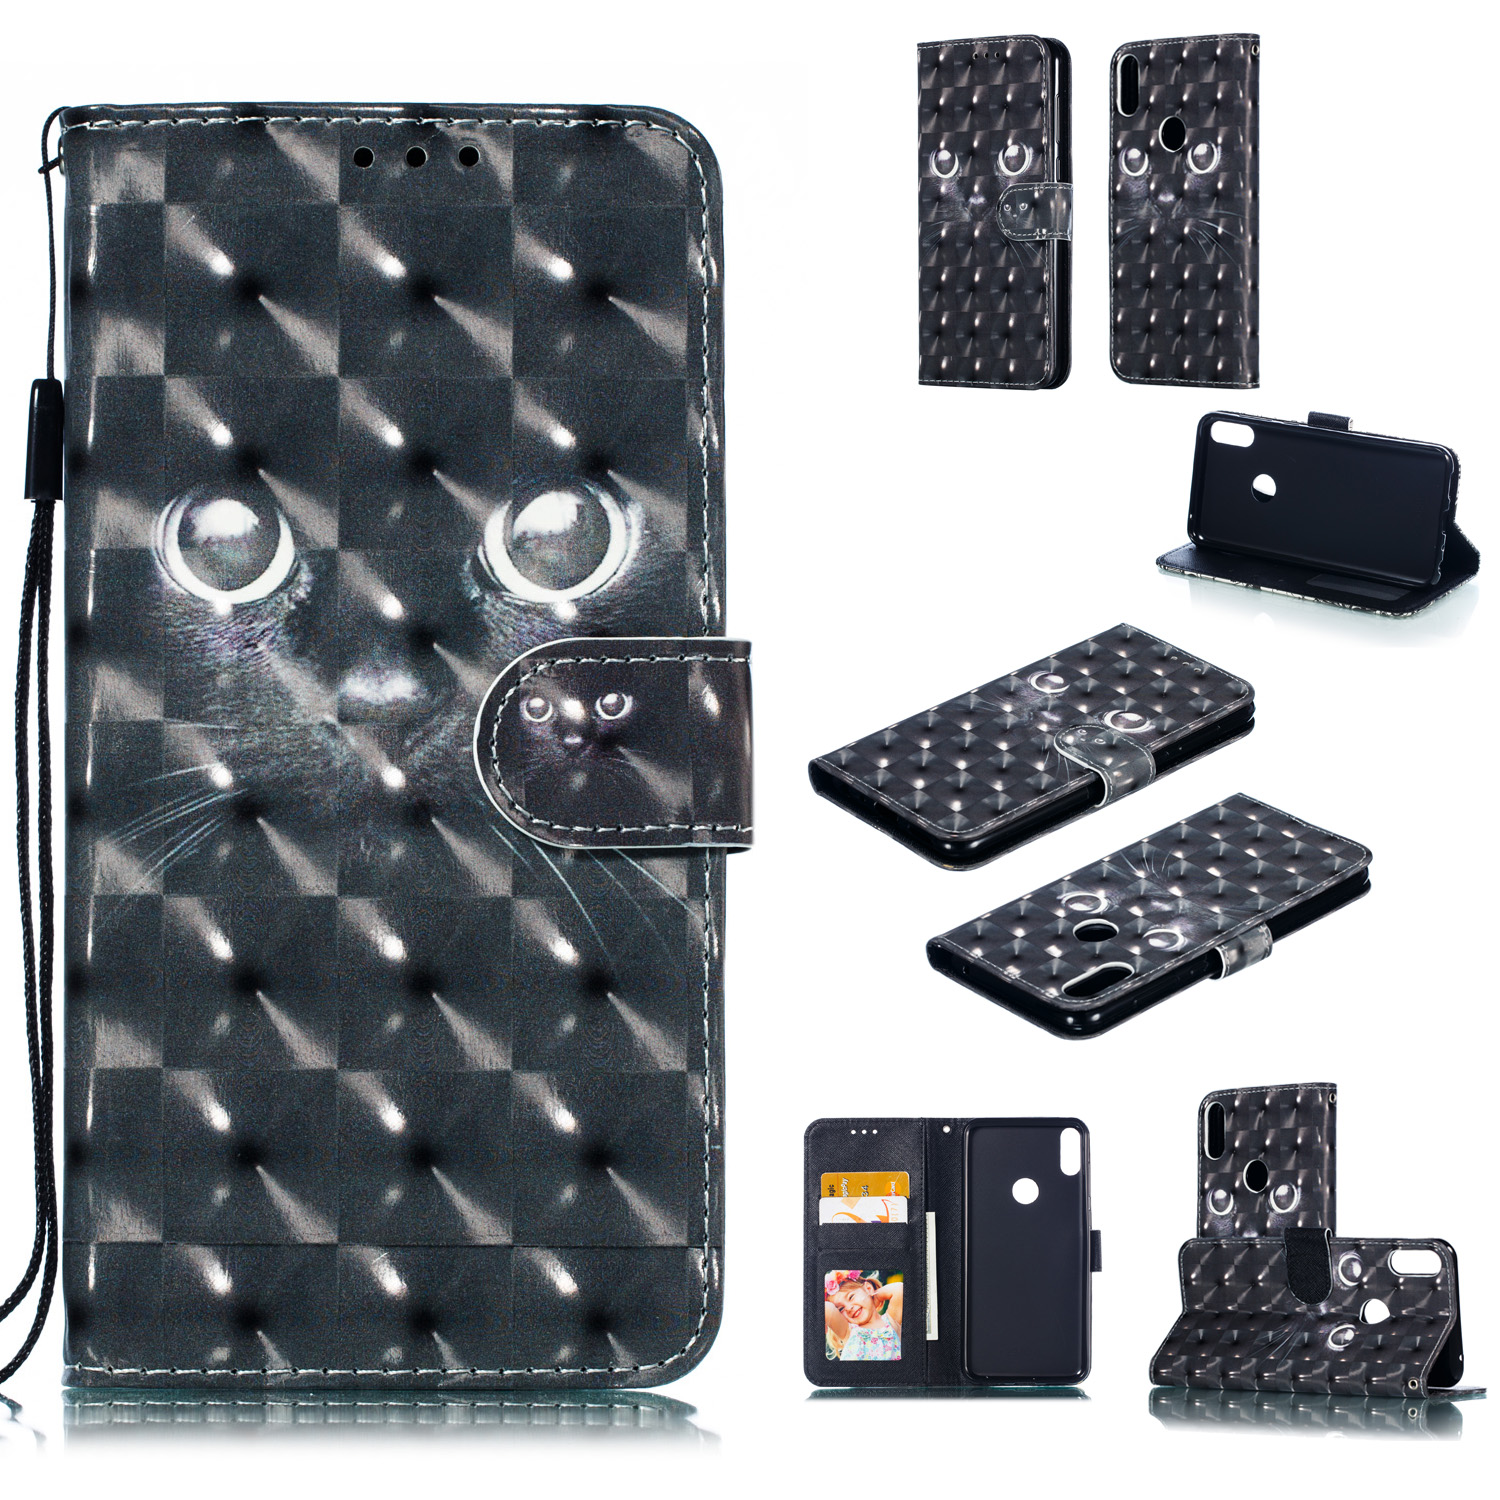 For ASUS ZENFONE MAX Pro M1/ZB601KL/ZB602KL 3D Coloured Painted PU Magnetic Clasp Phone Case with Card Slots Bracket Lanyard black eyes